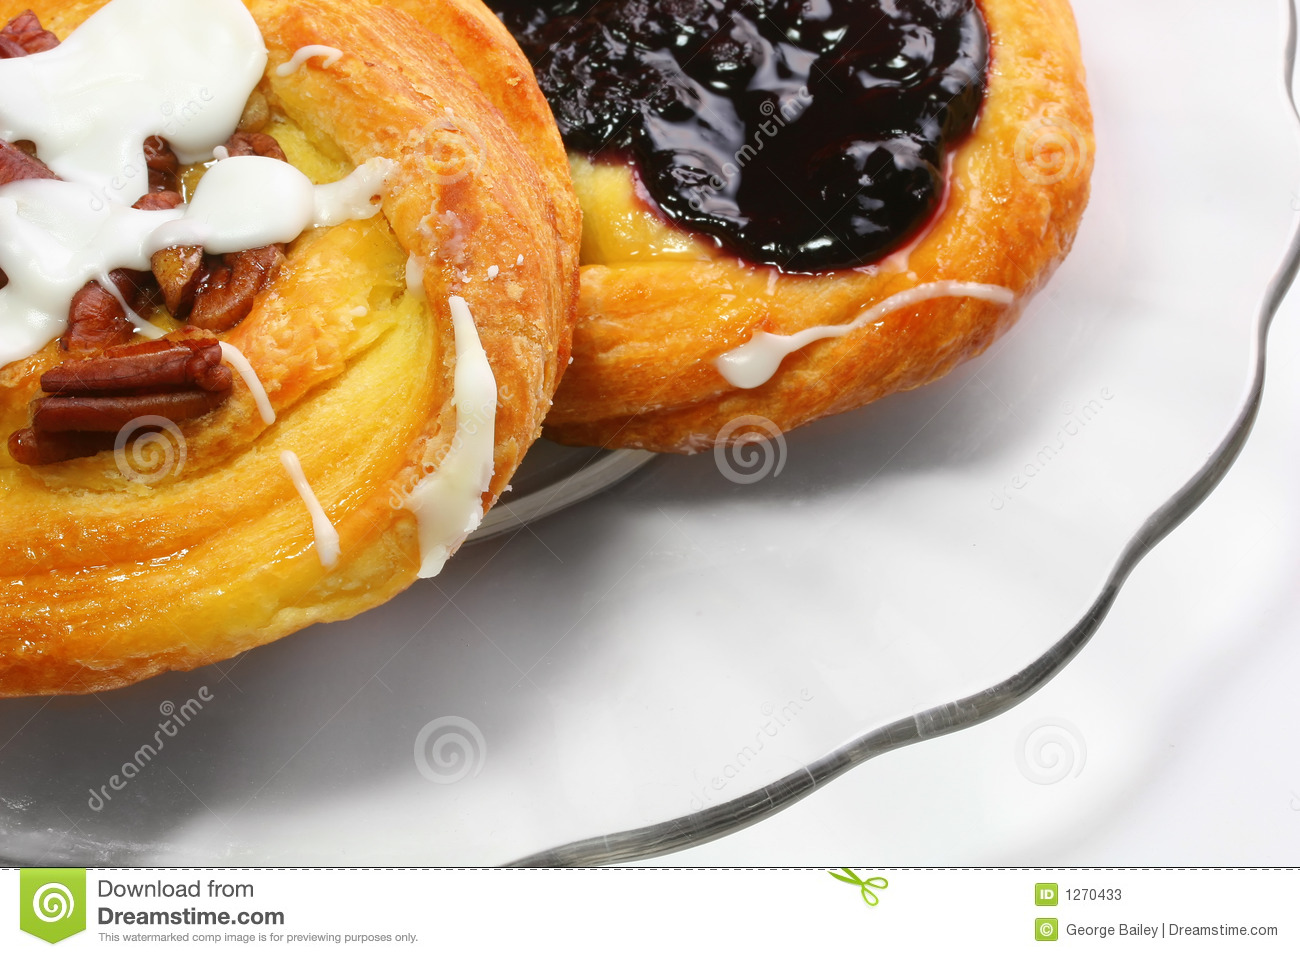 Two danishes